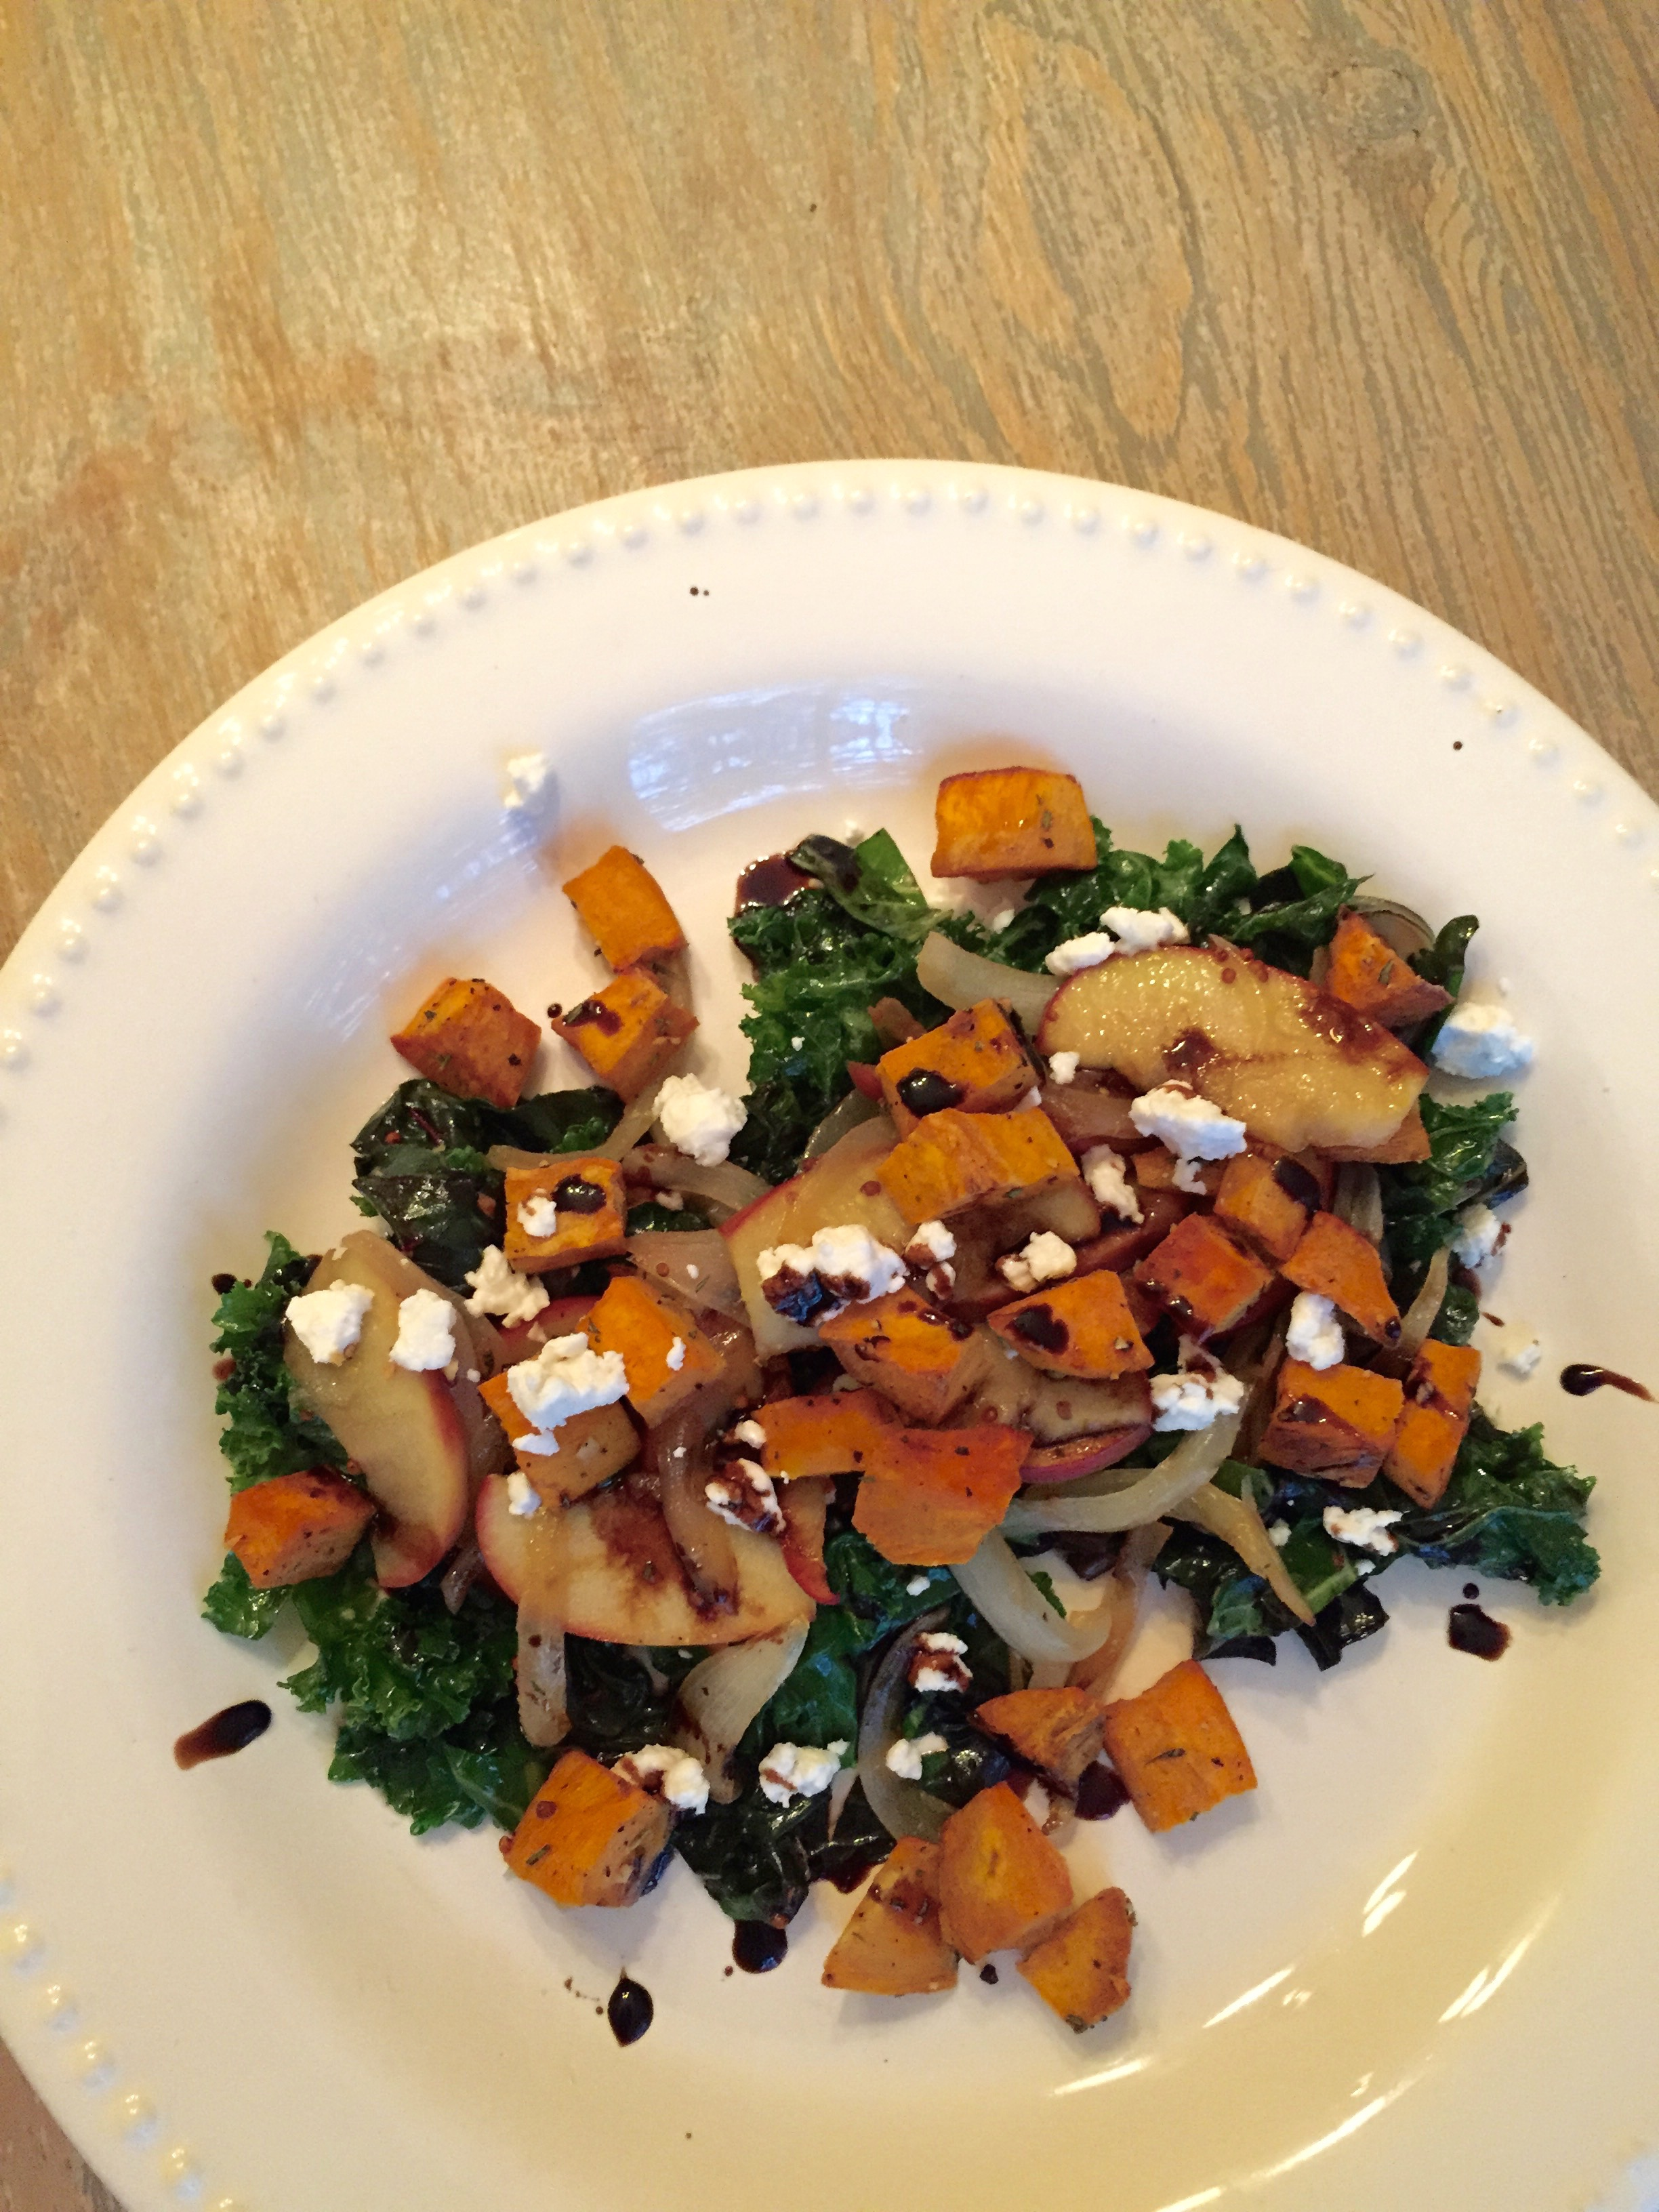 warm roasted sweet potato kale salad with caramelized onions and apples, balsamic glaze, pecans, goat cheese